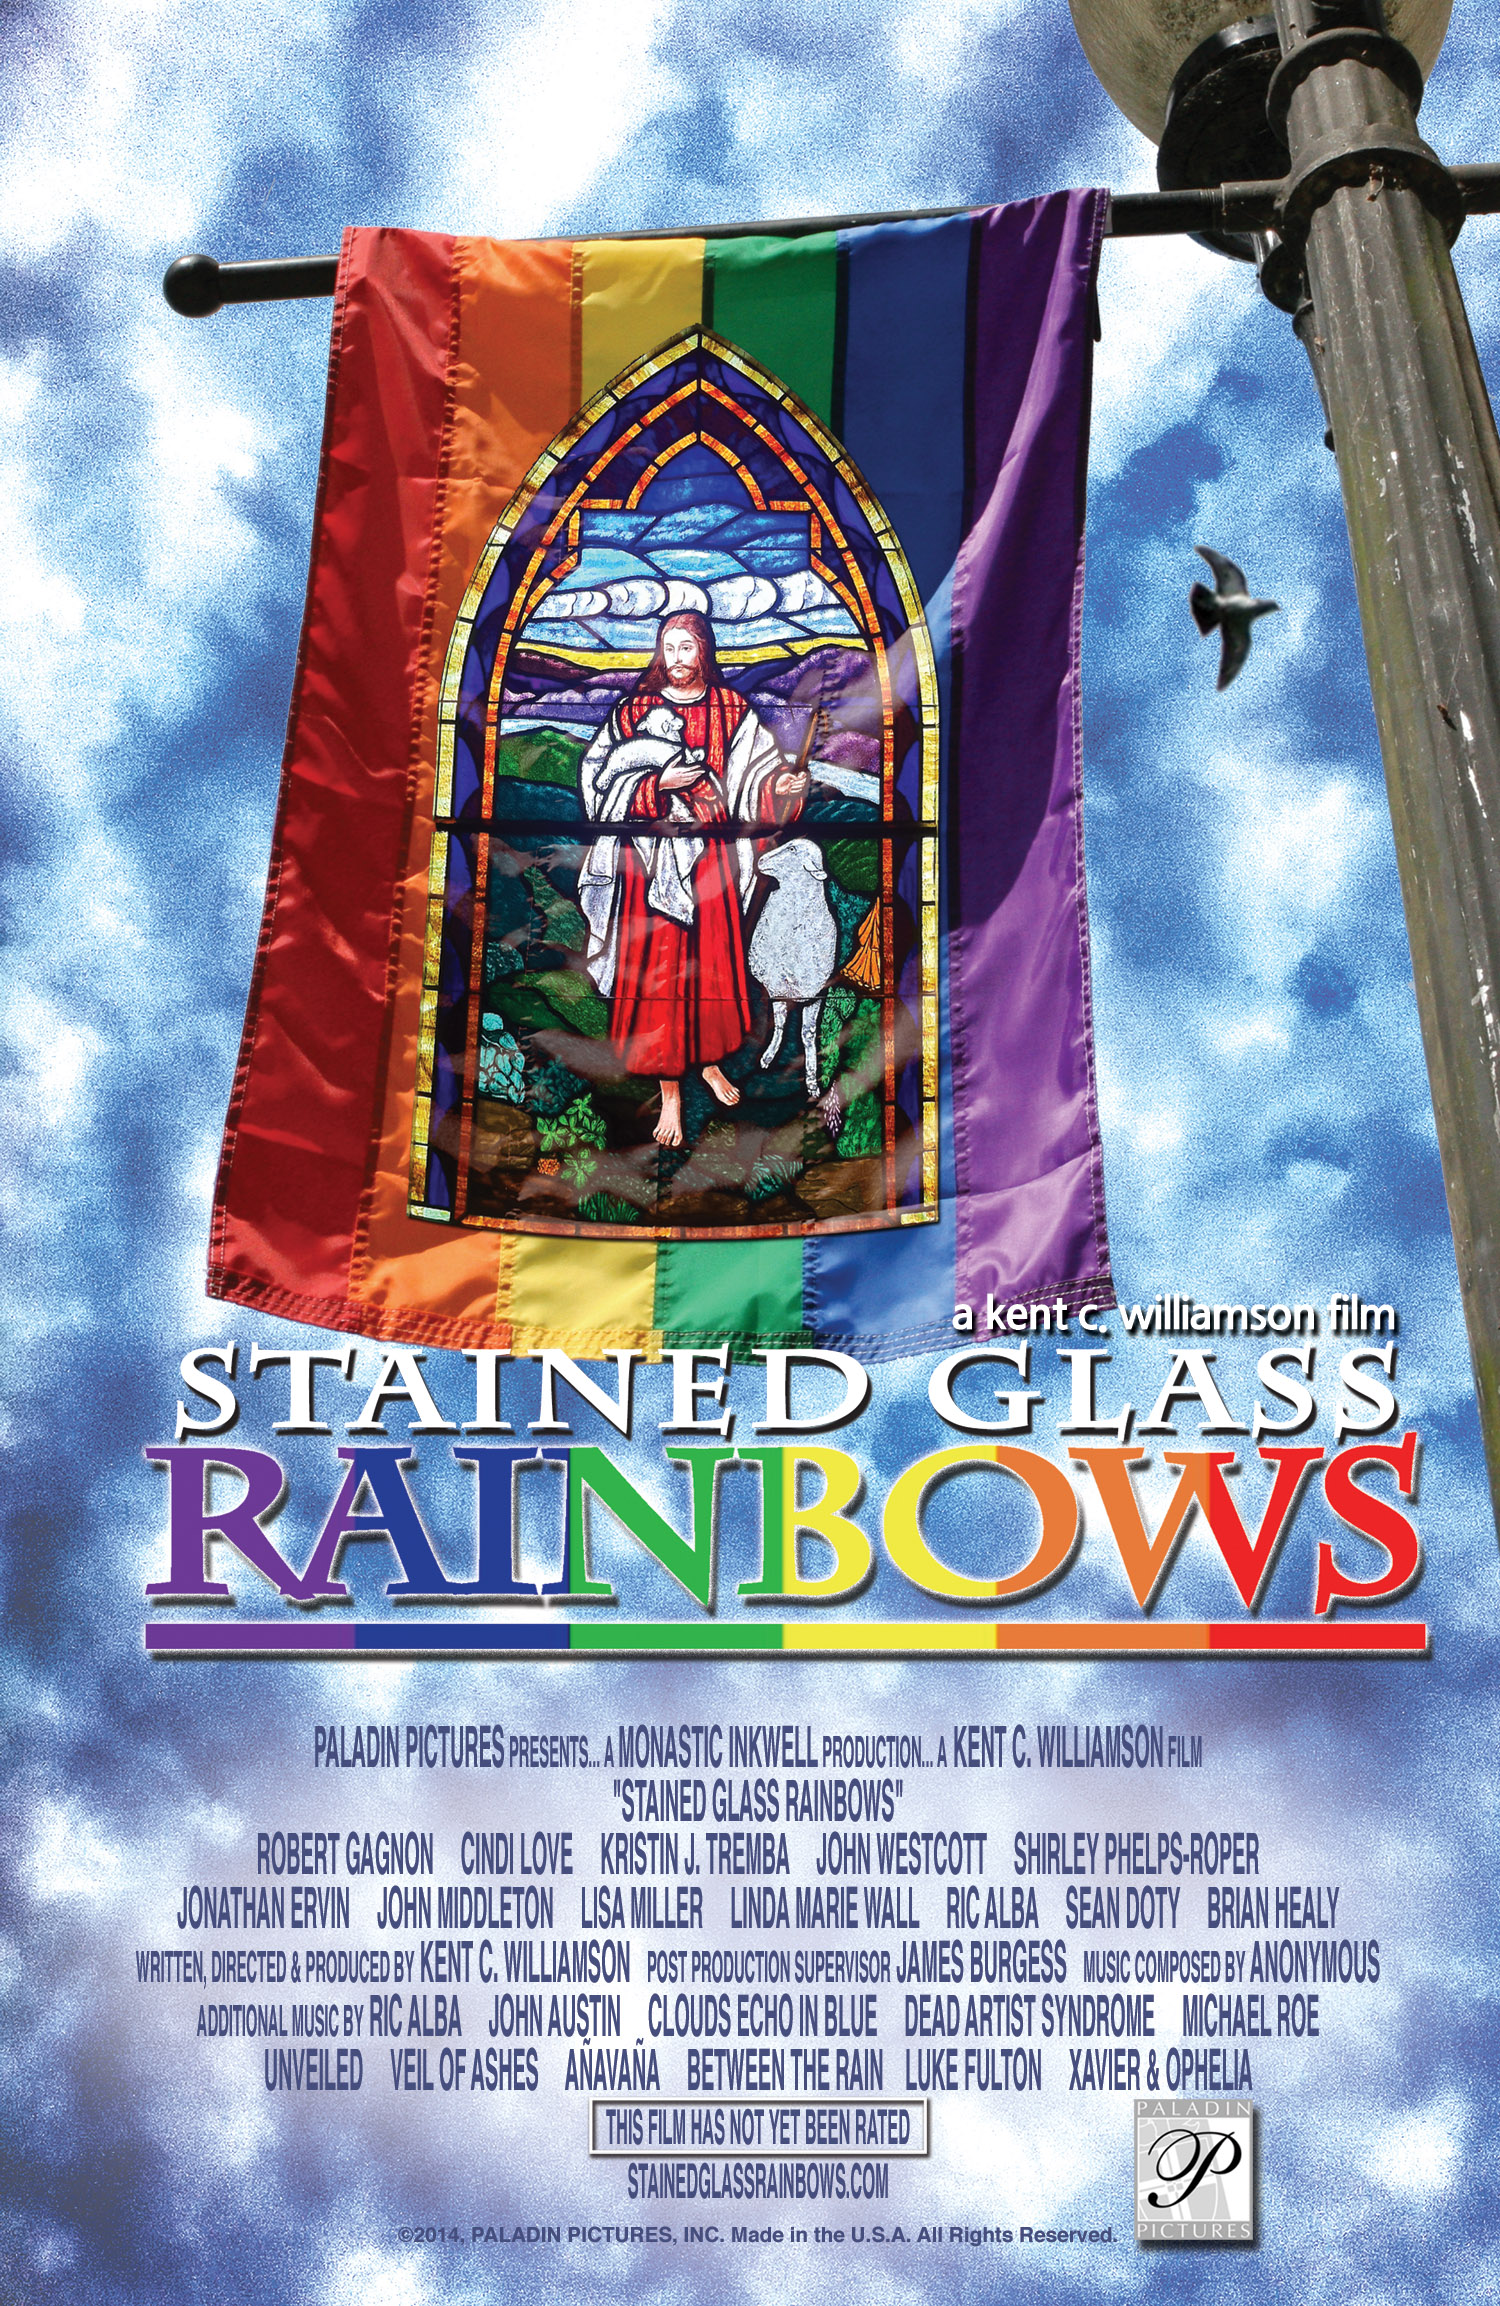 StainedGlassRainbows-Poster-15001